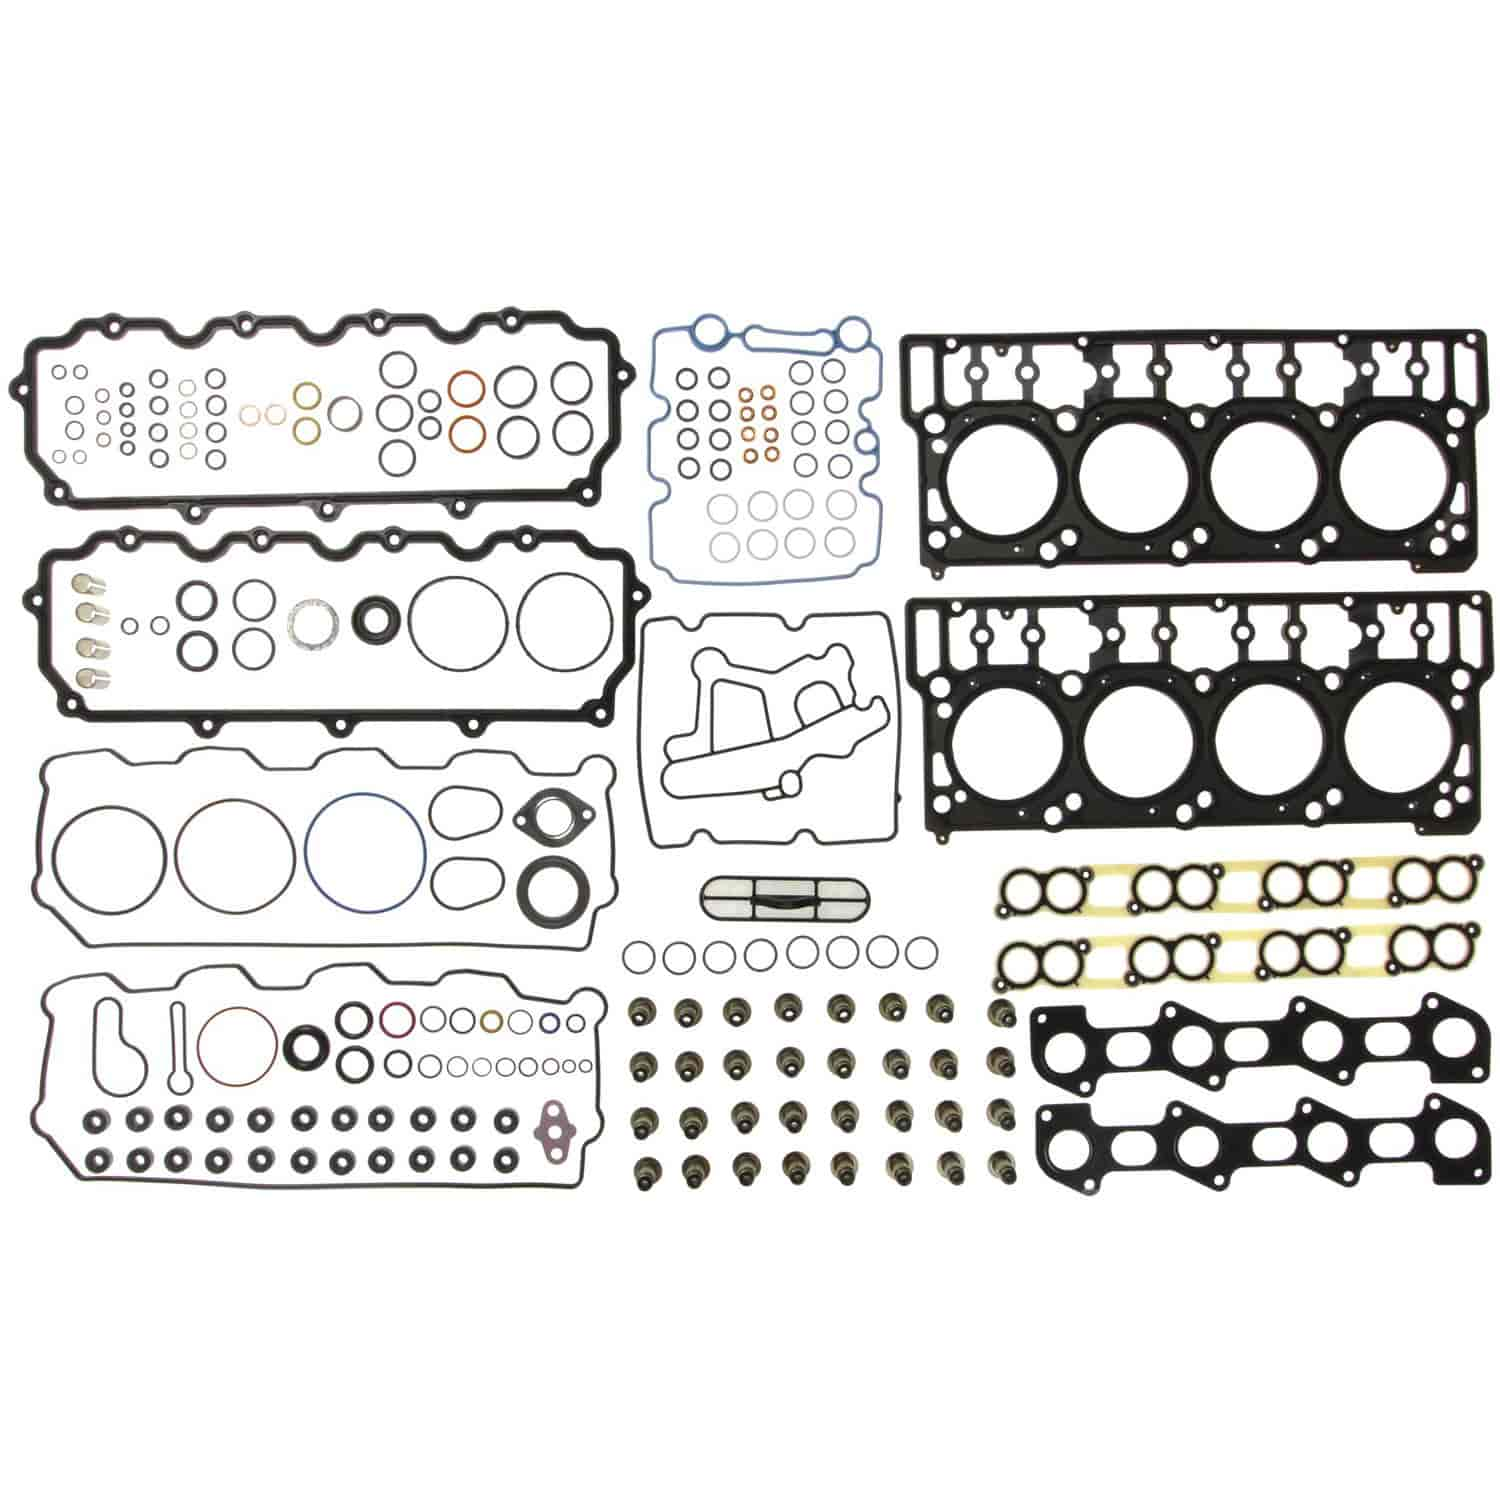 1999 Ford Econoline E150 Cargo Head Gasket: Clevite MAHLE HS54450: Head Gasket Set 2003-2006 Ford